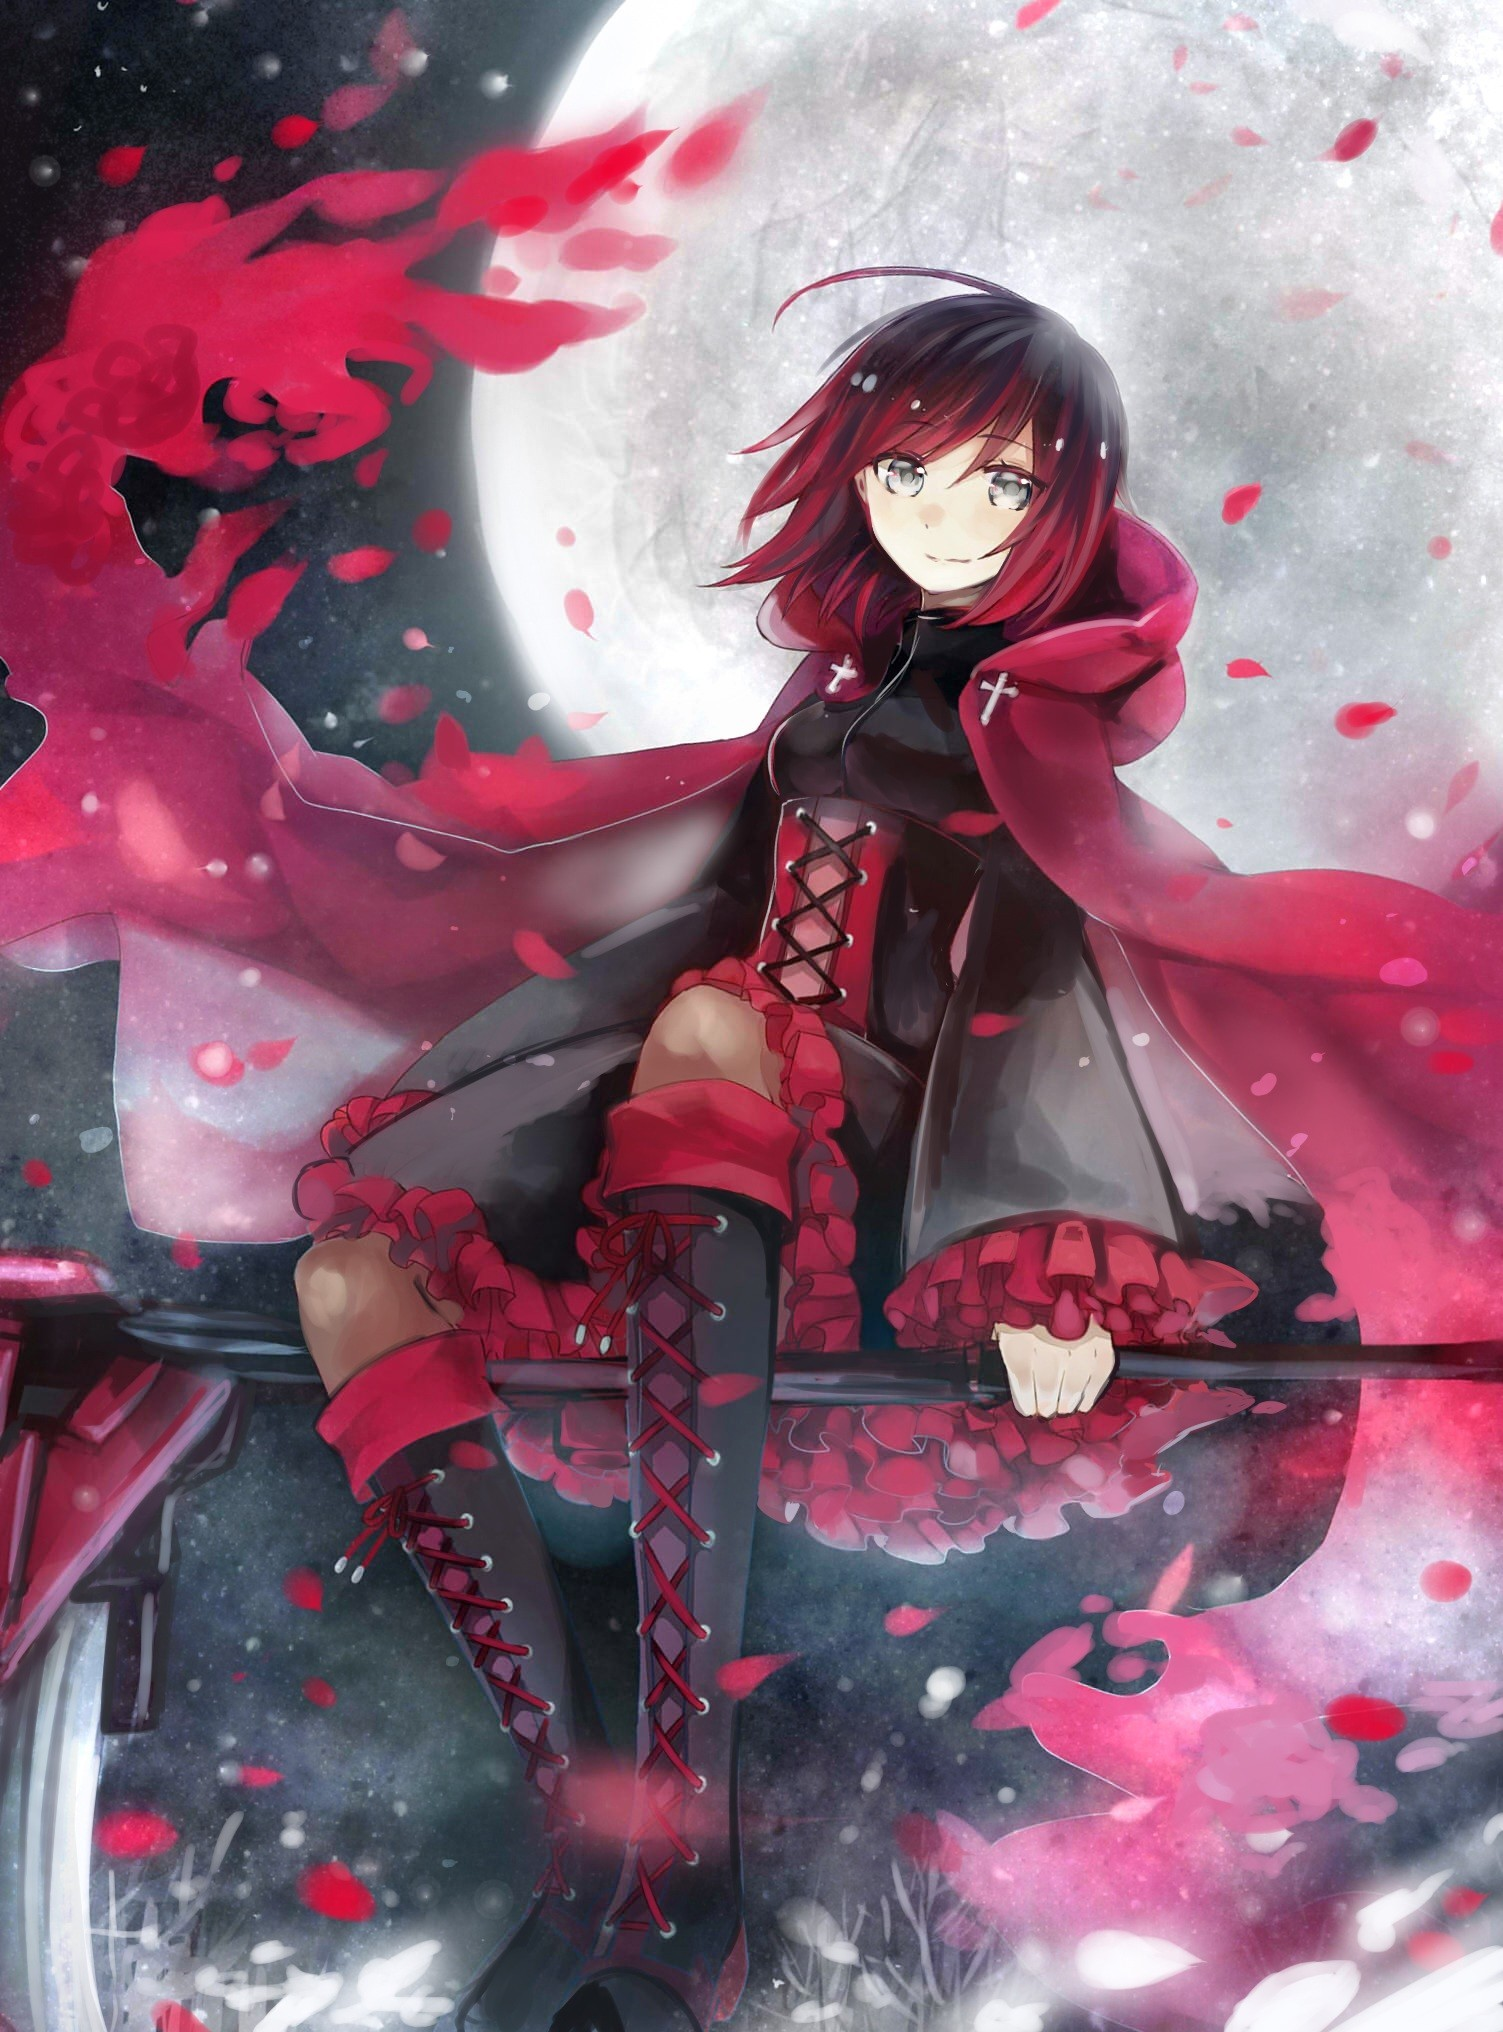 Rwby ruby wallpaper 61 images - Boy with rose wallpaper ...